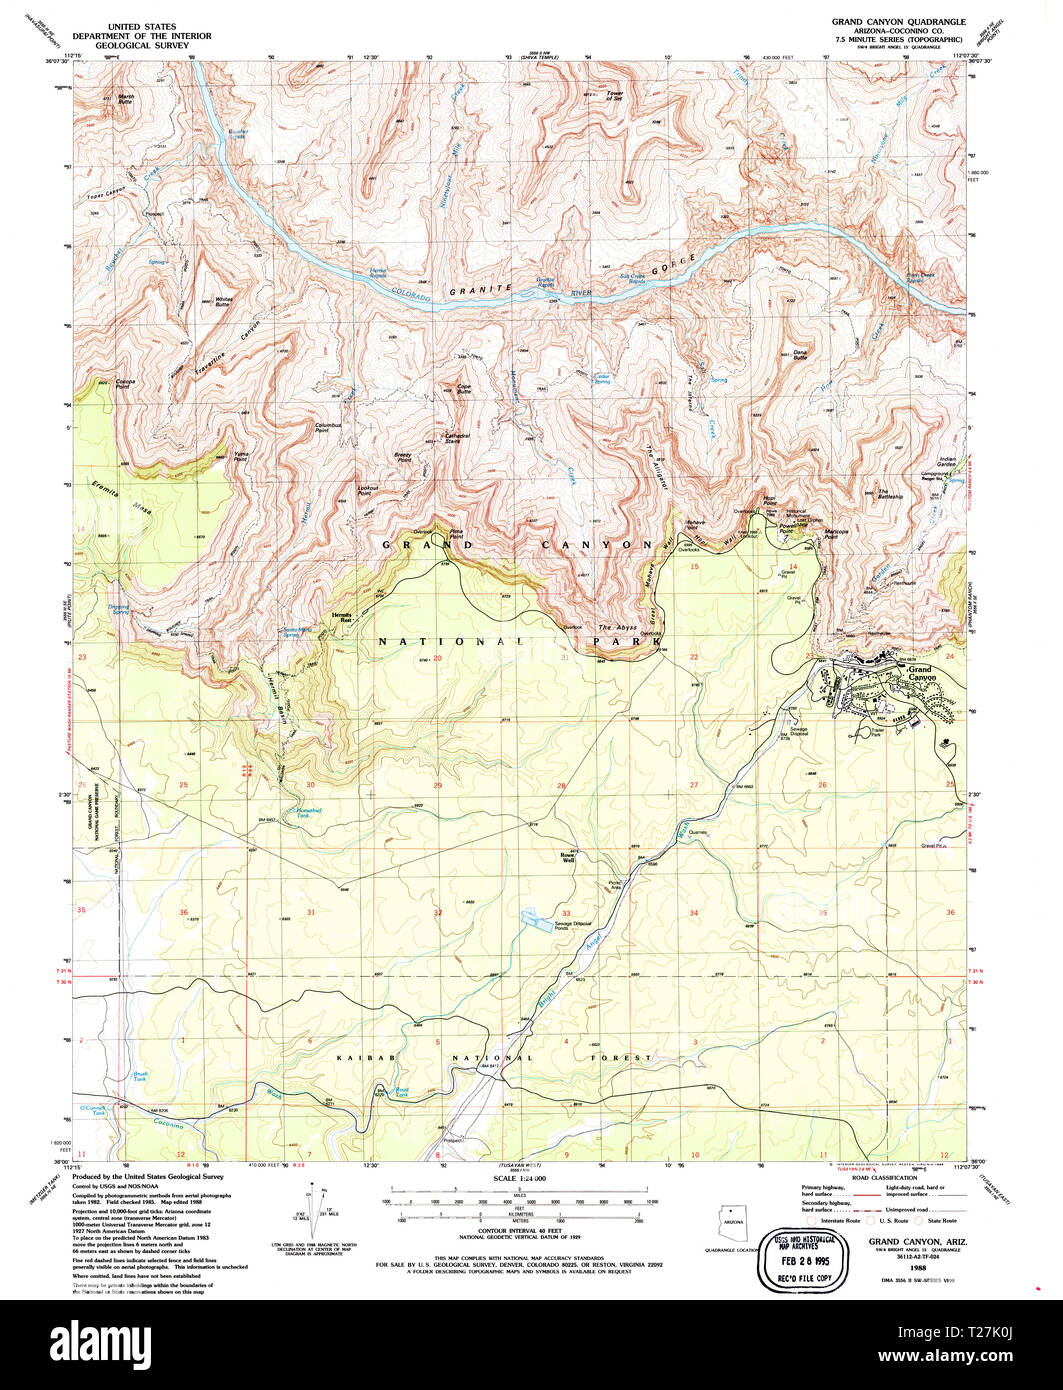 Map Of Arizona And Grand Canyon.Usgs Topo Map Arizona Az Grand Canyon 311526 1988 24000 Restoration